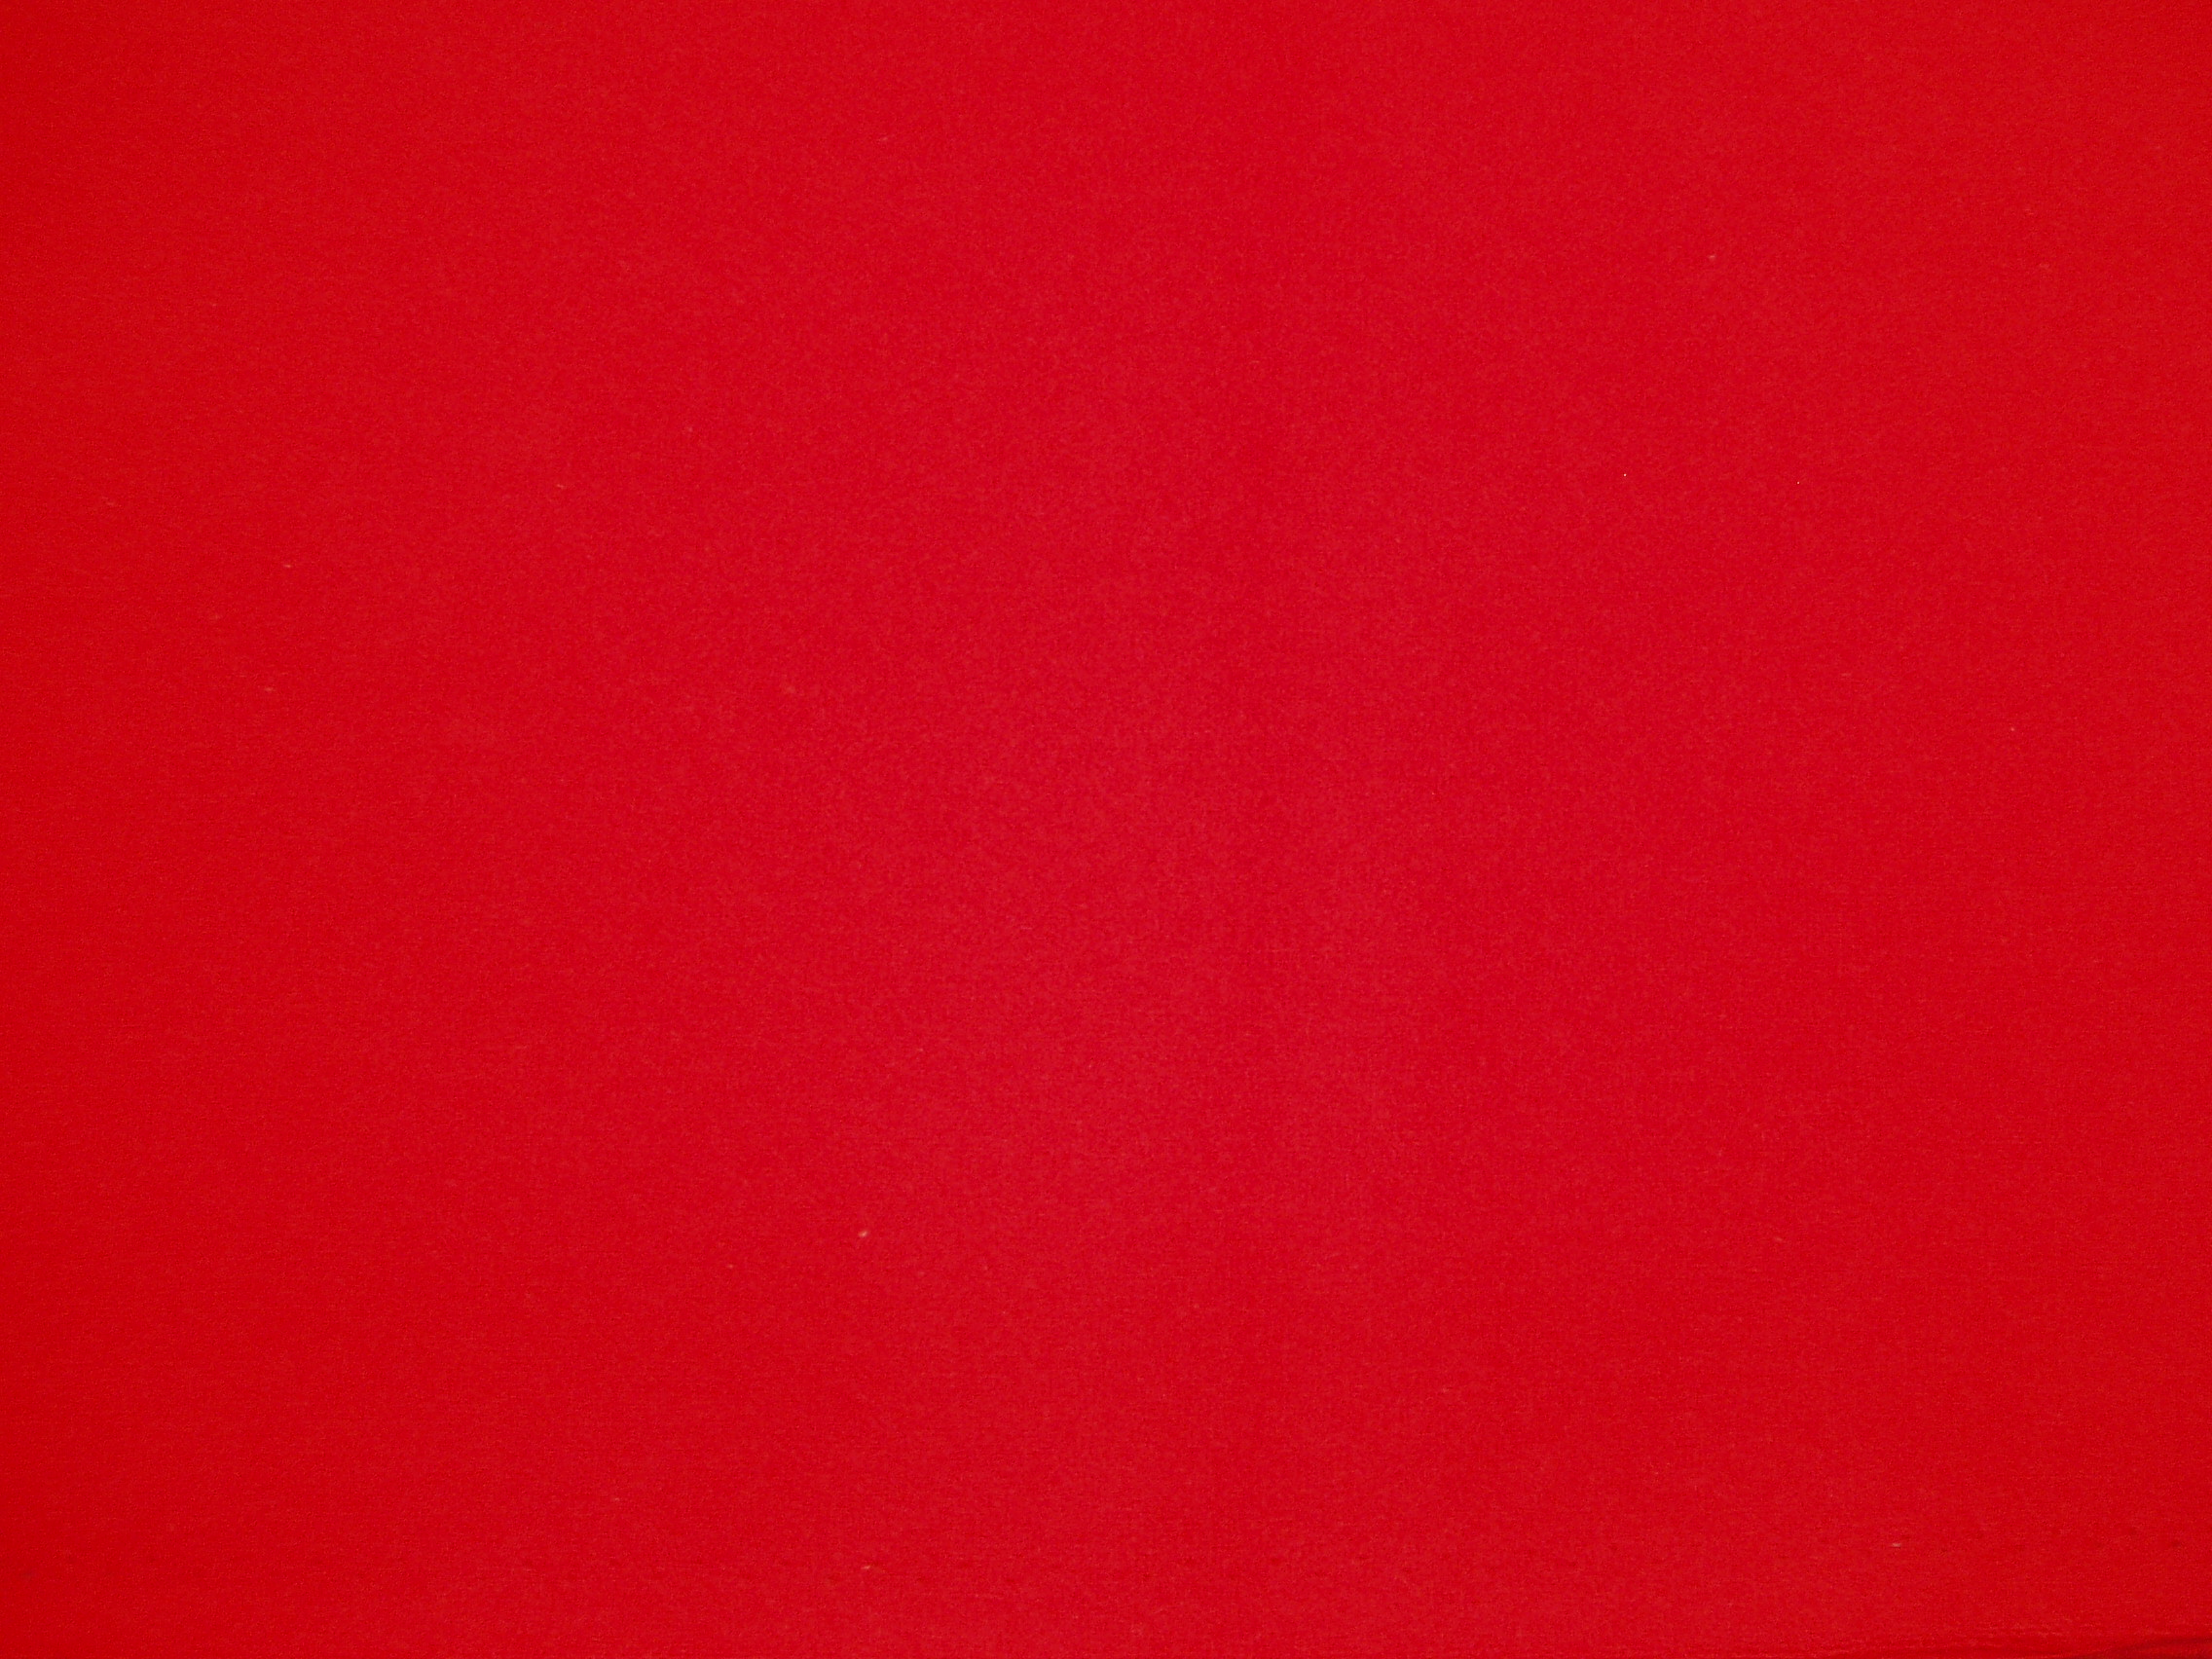 Red Pics, Pattern Collection